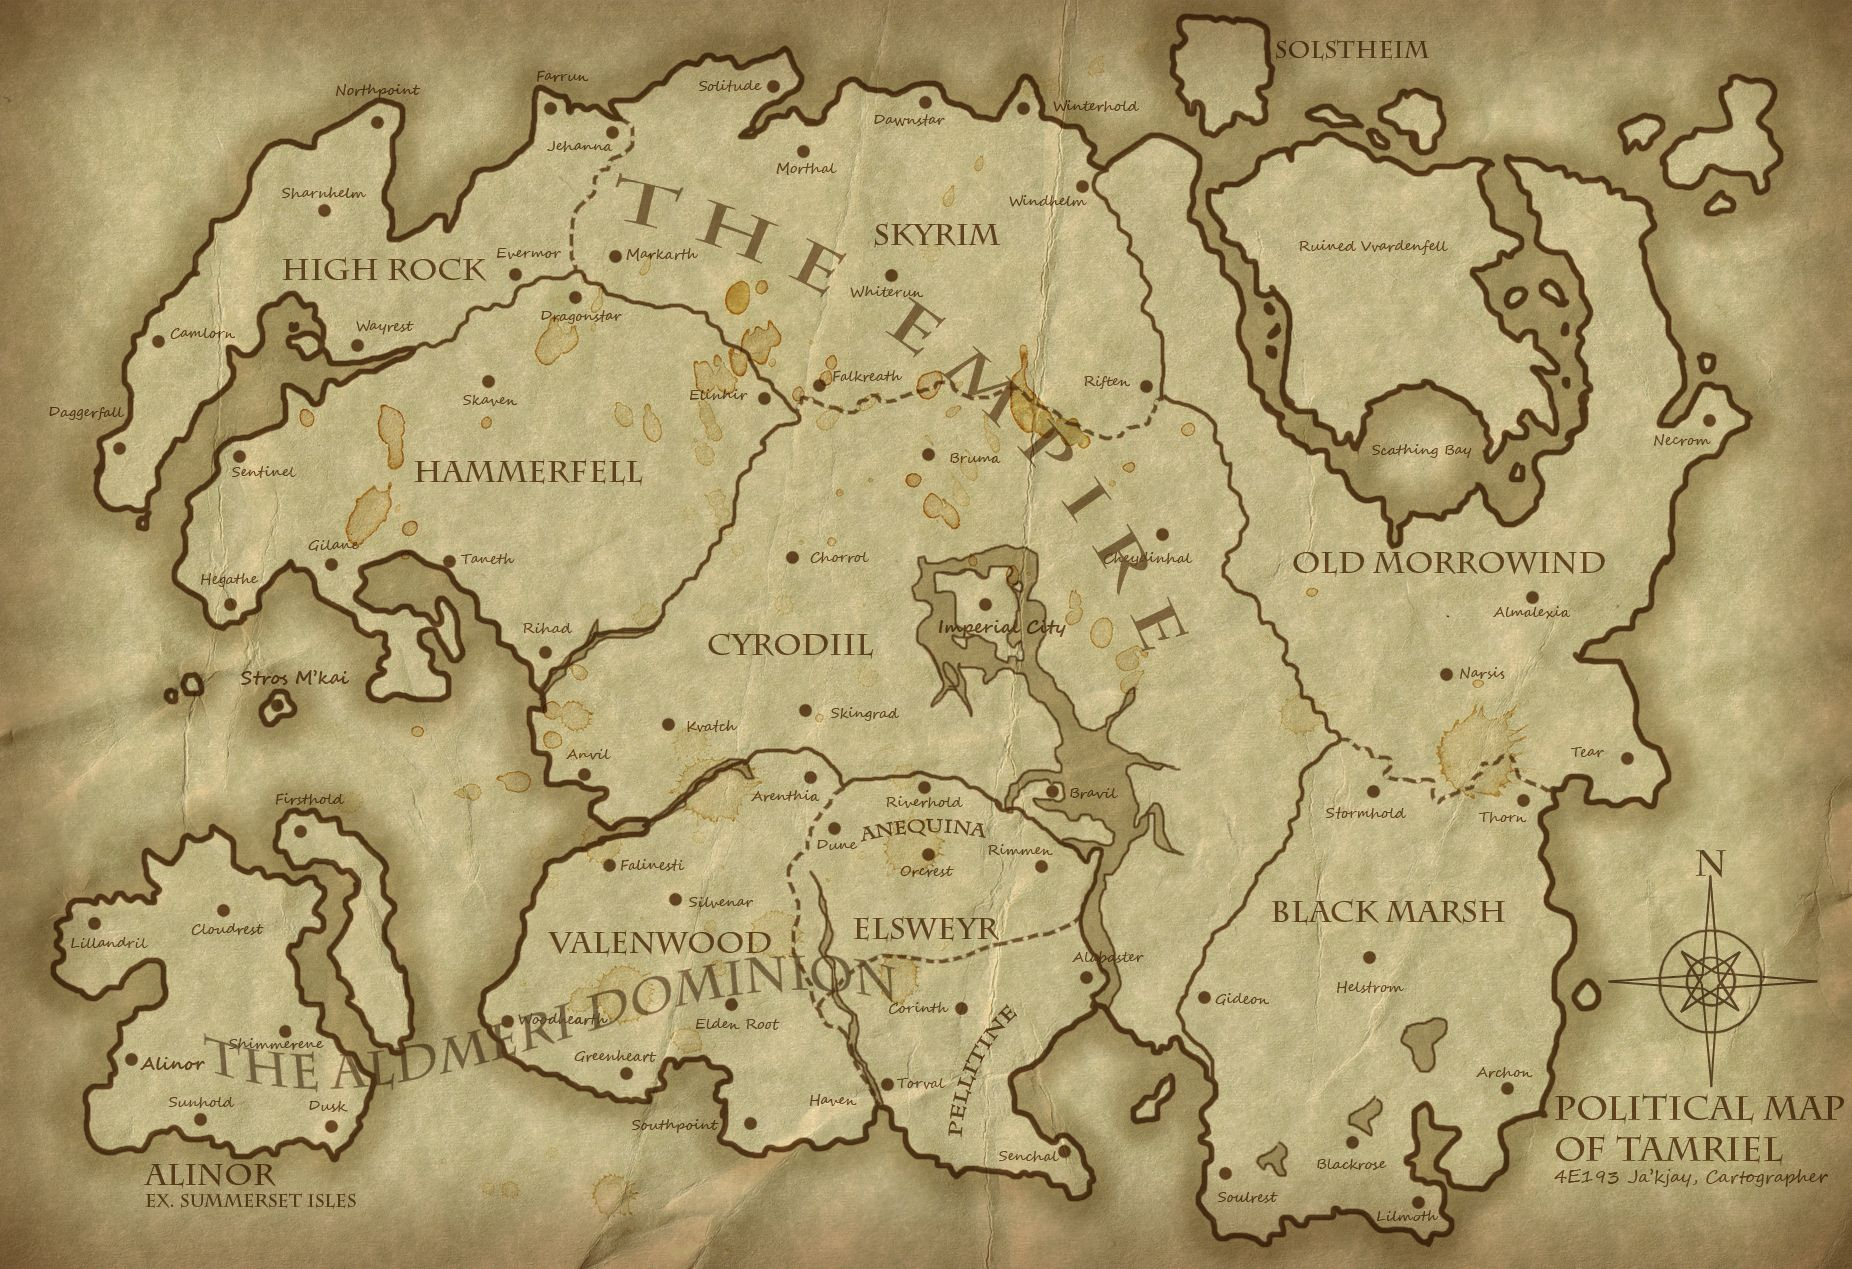 A Map Of All Of Tamriel Political Map of Tamriel 4E193   Revised 1852x1269